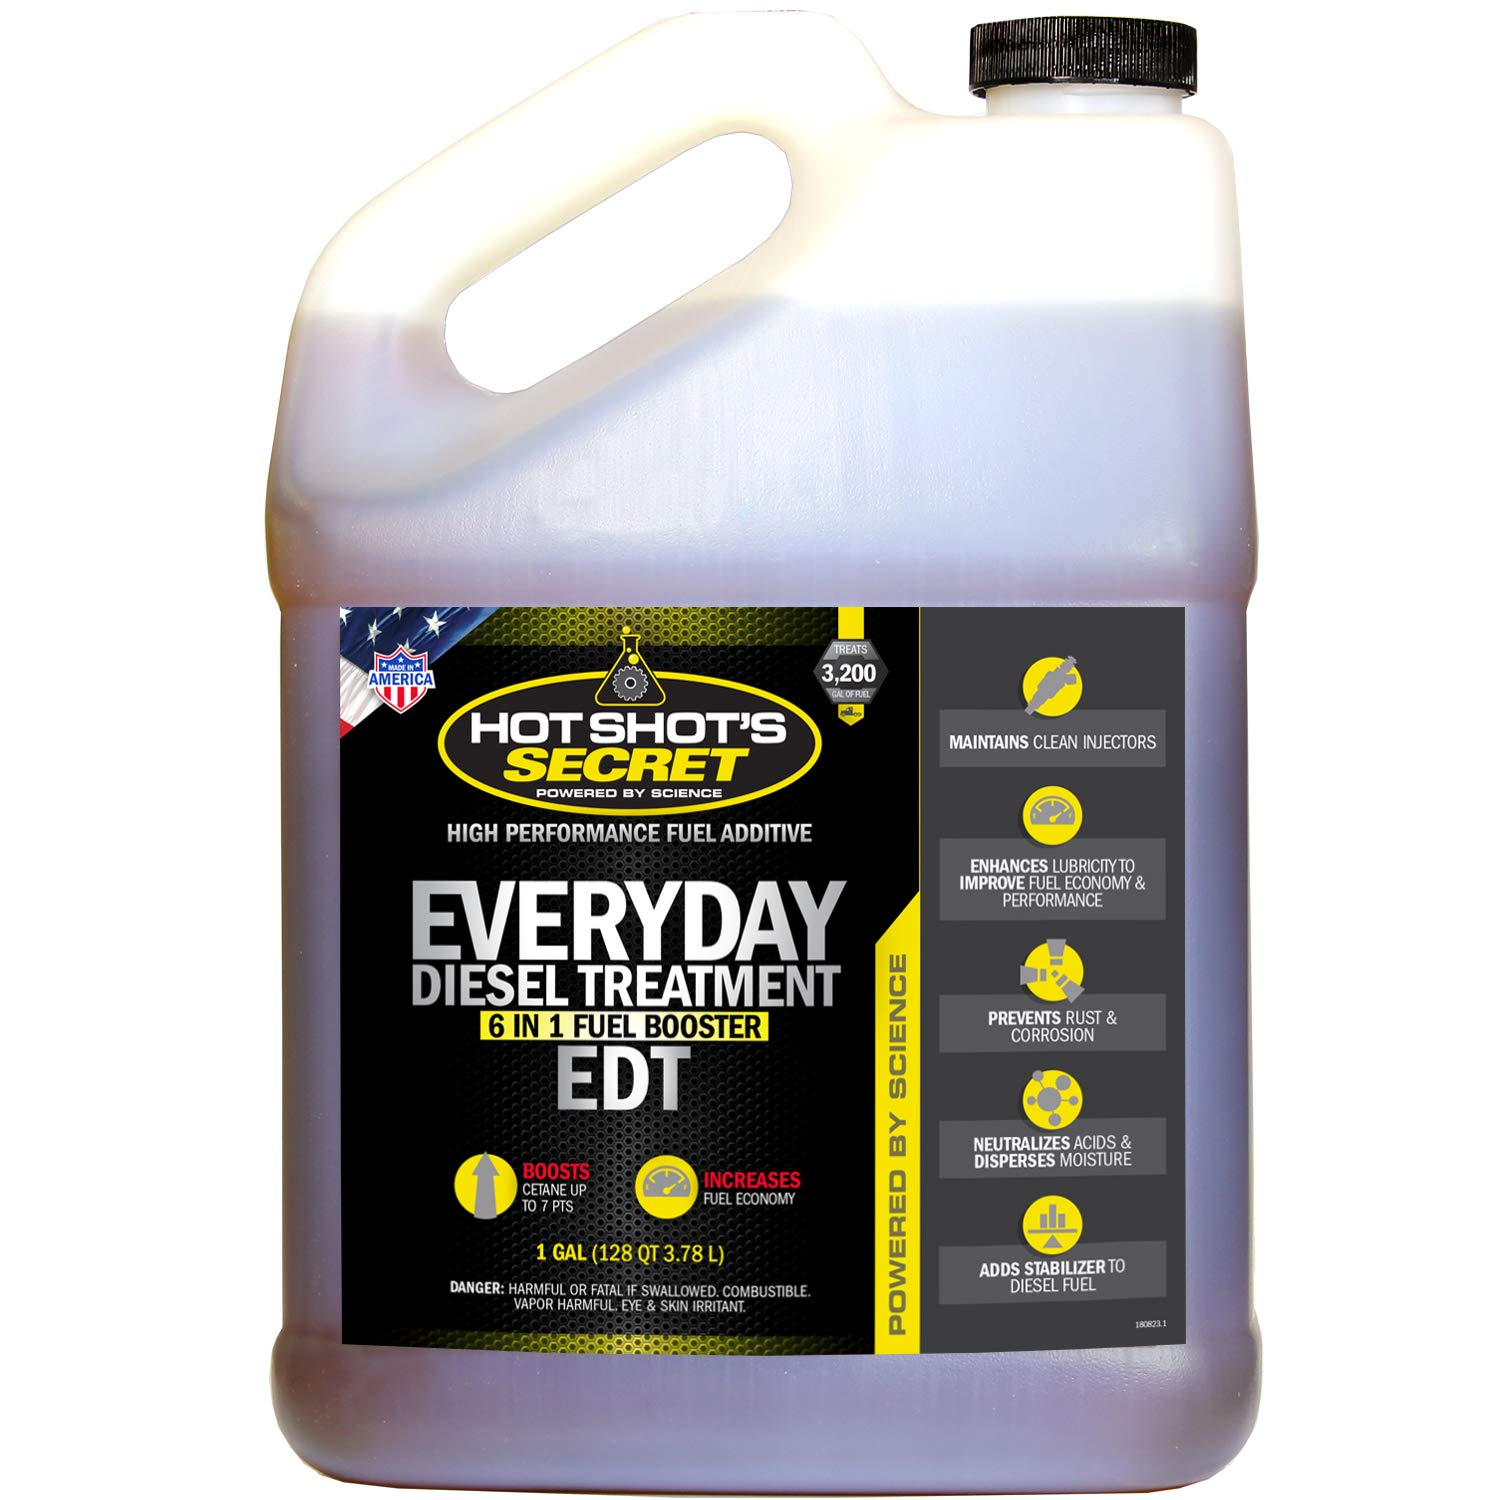 Hot Shot's Secret HSSEDT01G Everyday Diesel Treatment (EDT) 1 Gallon, 128. Fluid_Ounces by Hot Shot's Secret